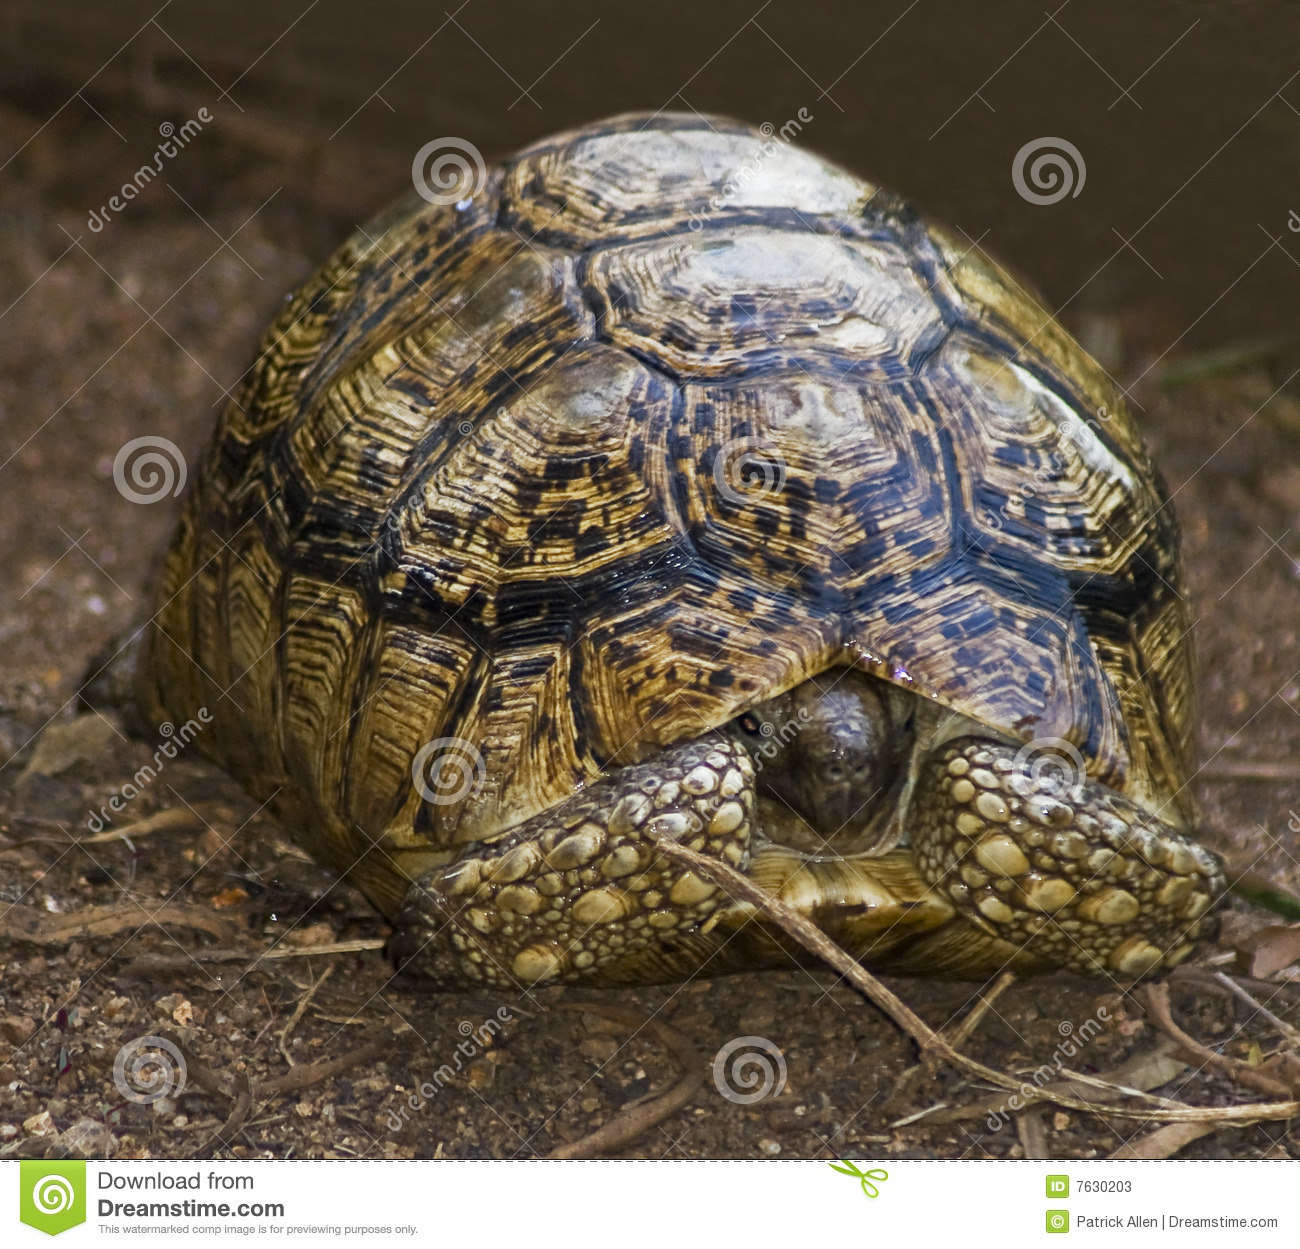 Radiated Tortoise clipart #5, Download drawings